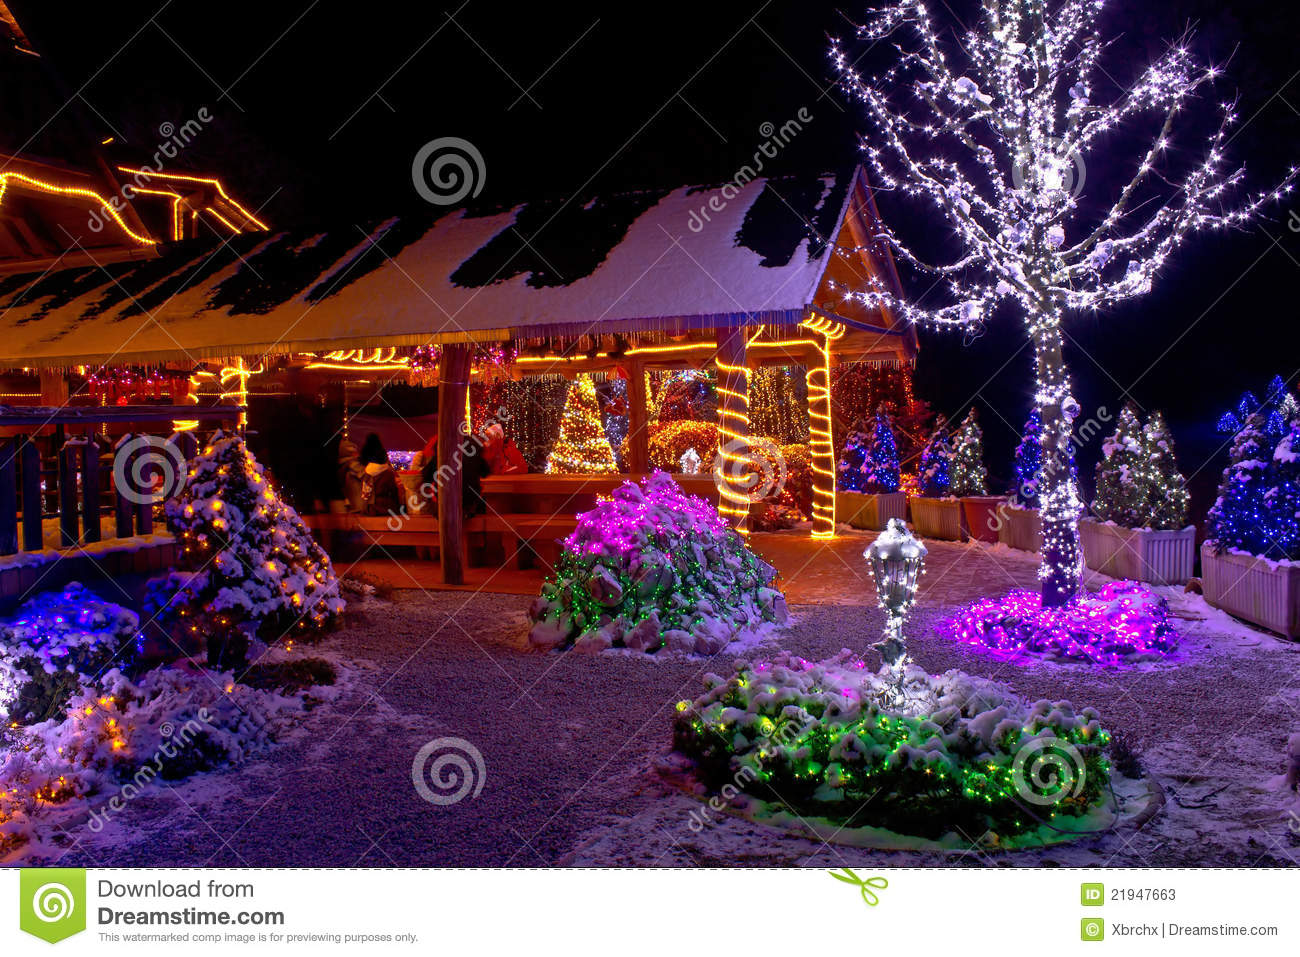 Cone Lumineux Noel Christmas Fantasy - Lodge And Tree Lights Stock Image